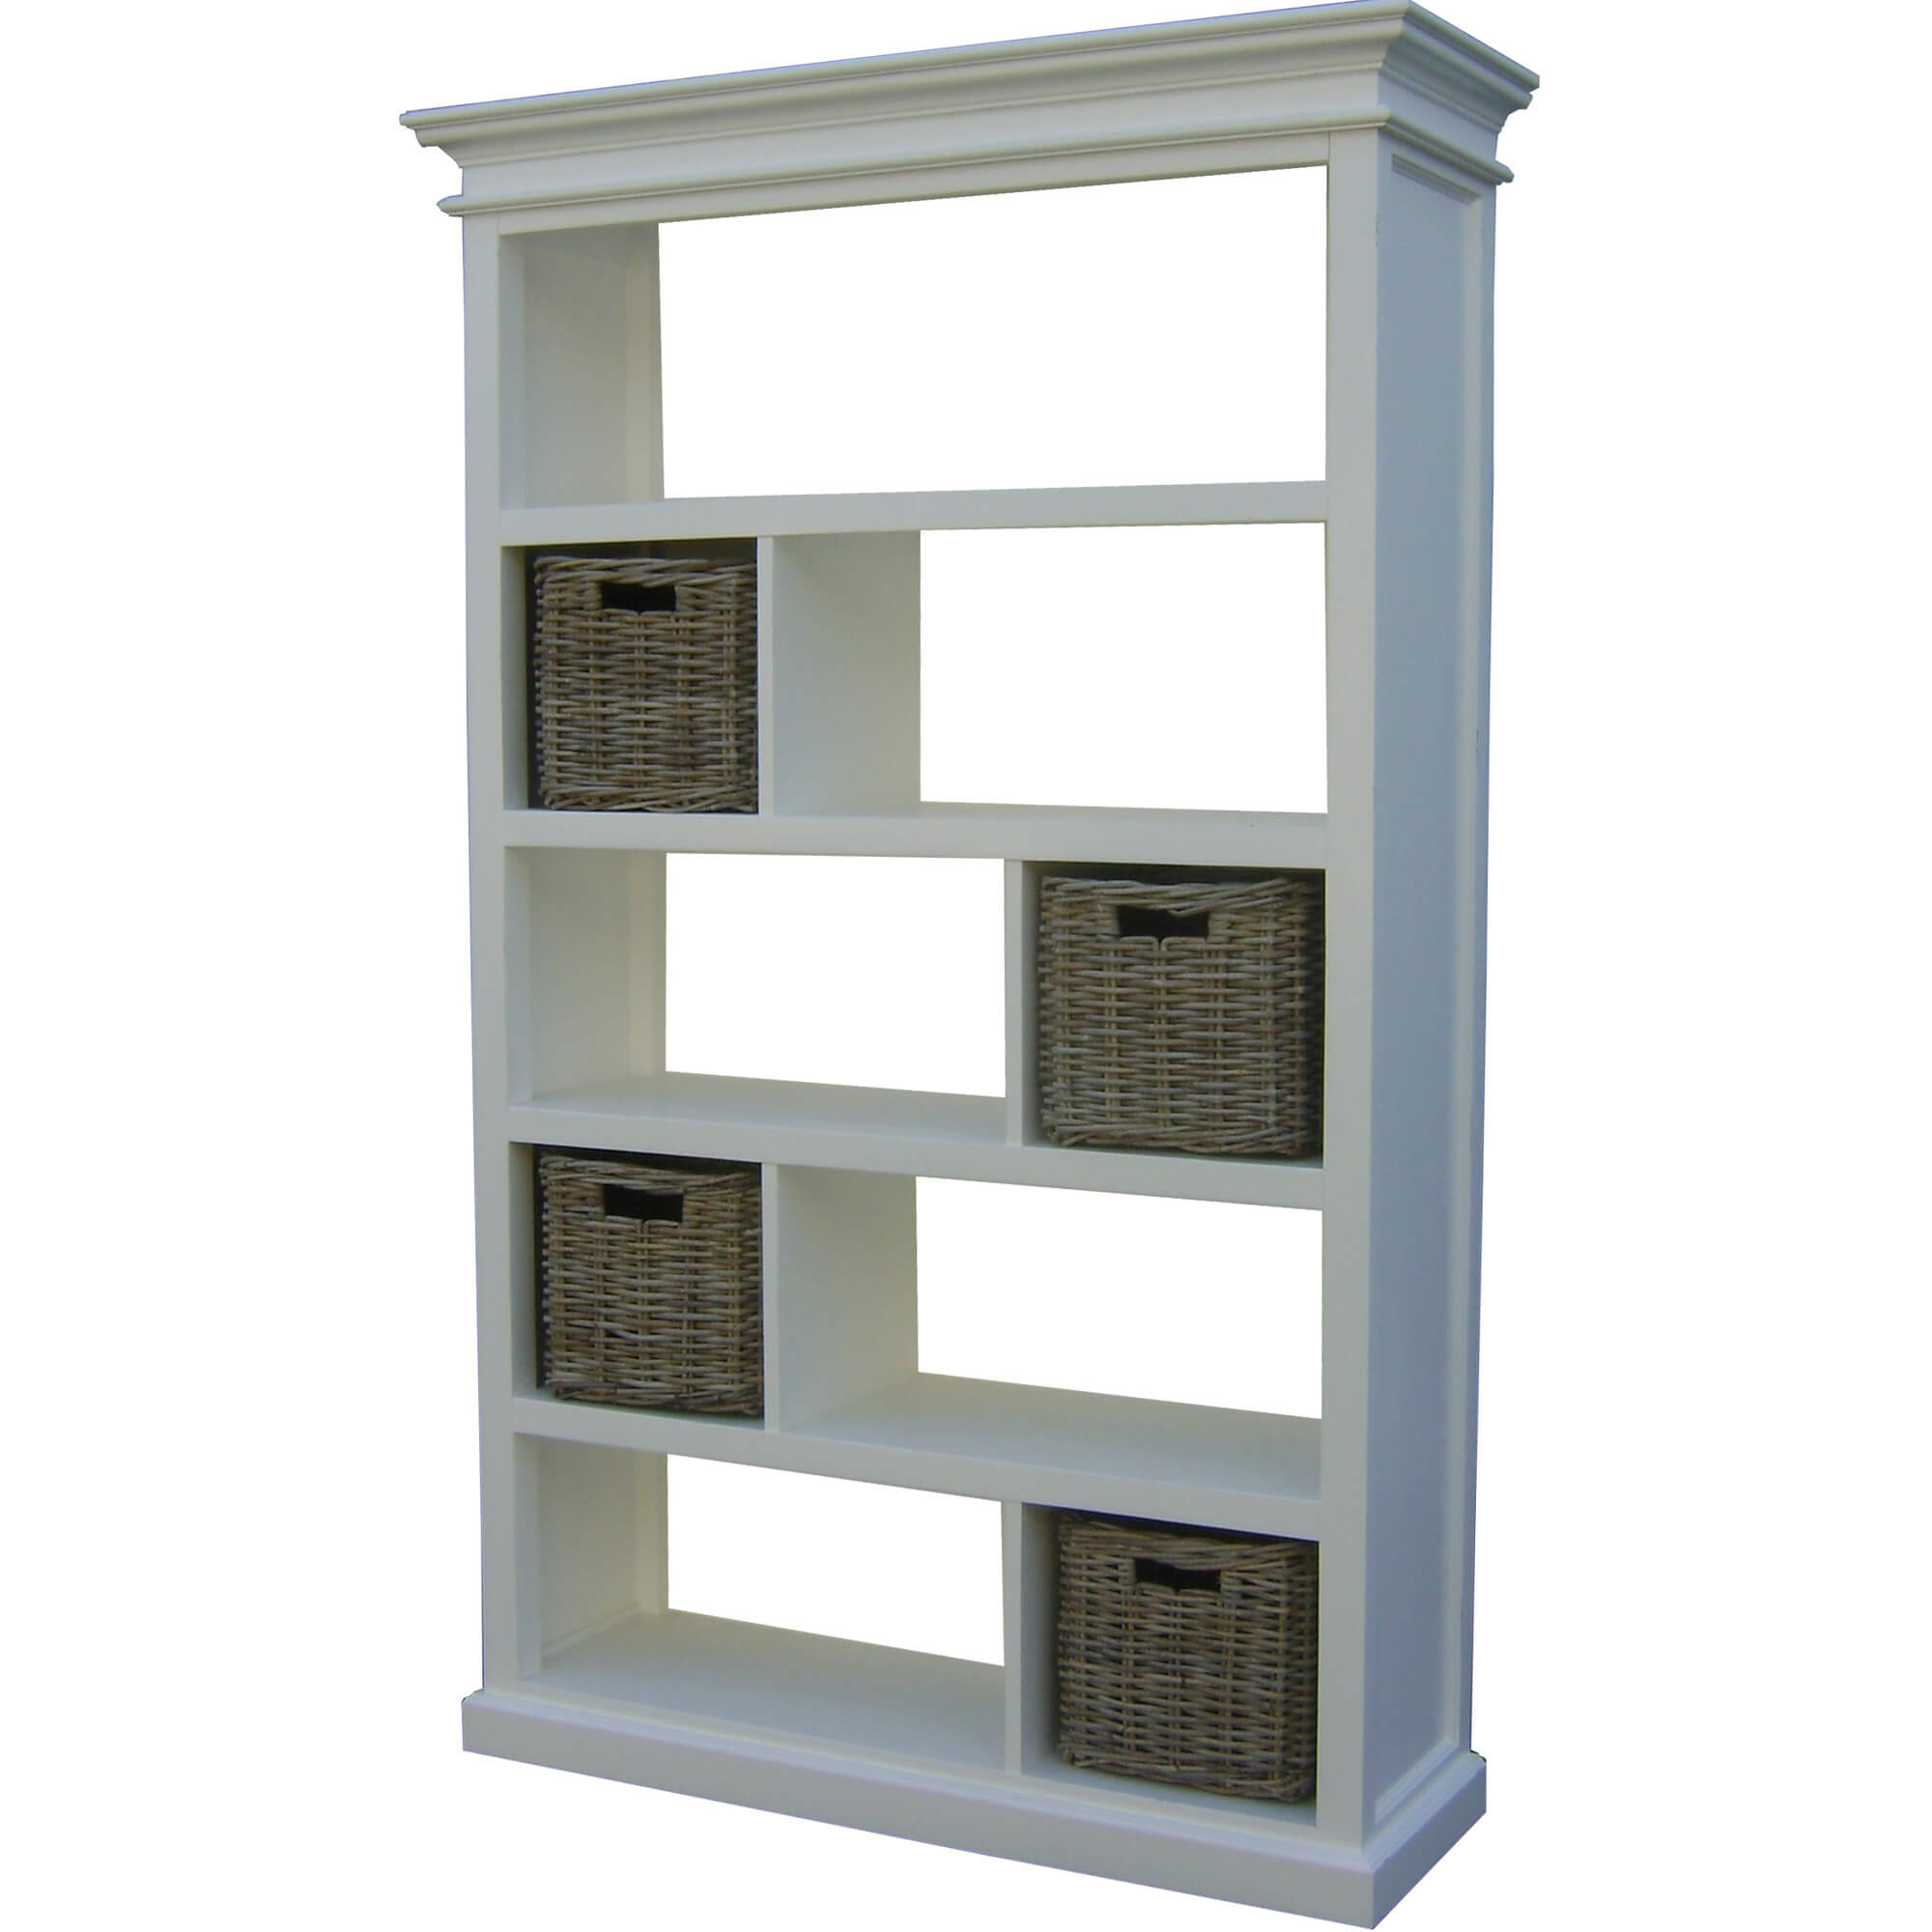 This white 9-cube shelf is staggered in it's configuration of wide and narrow cube sections... each subsequent shelf is inverted from the one below and above creating a pleasing storage pattern.